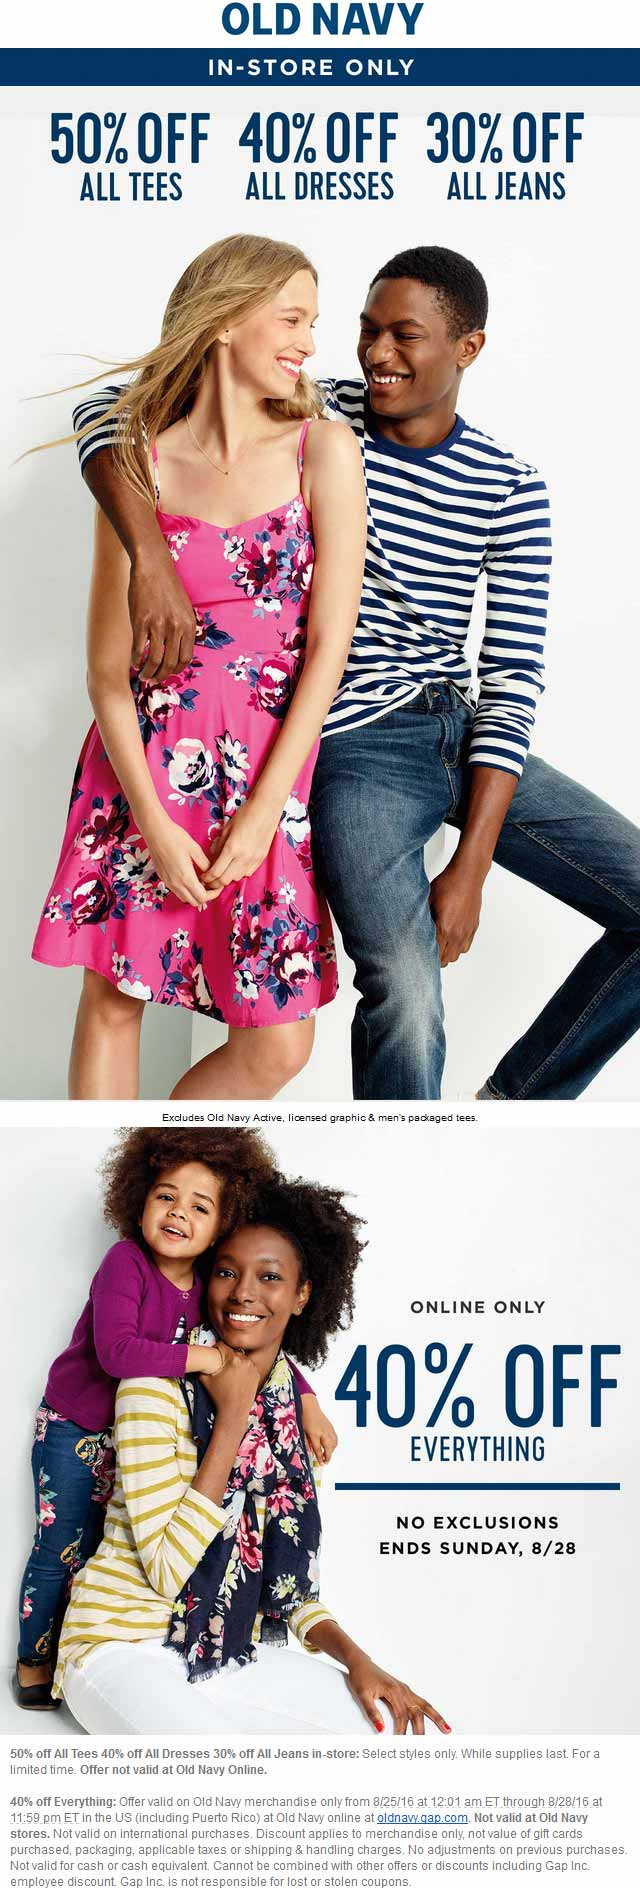 Old Navy Coupon November 2017 30-50% off at Old Navy, or 40% online